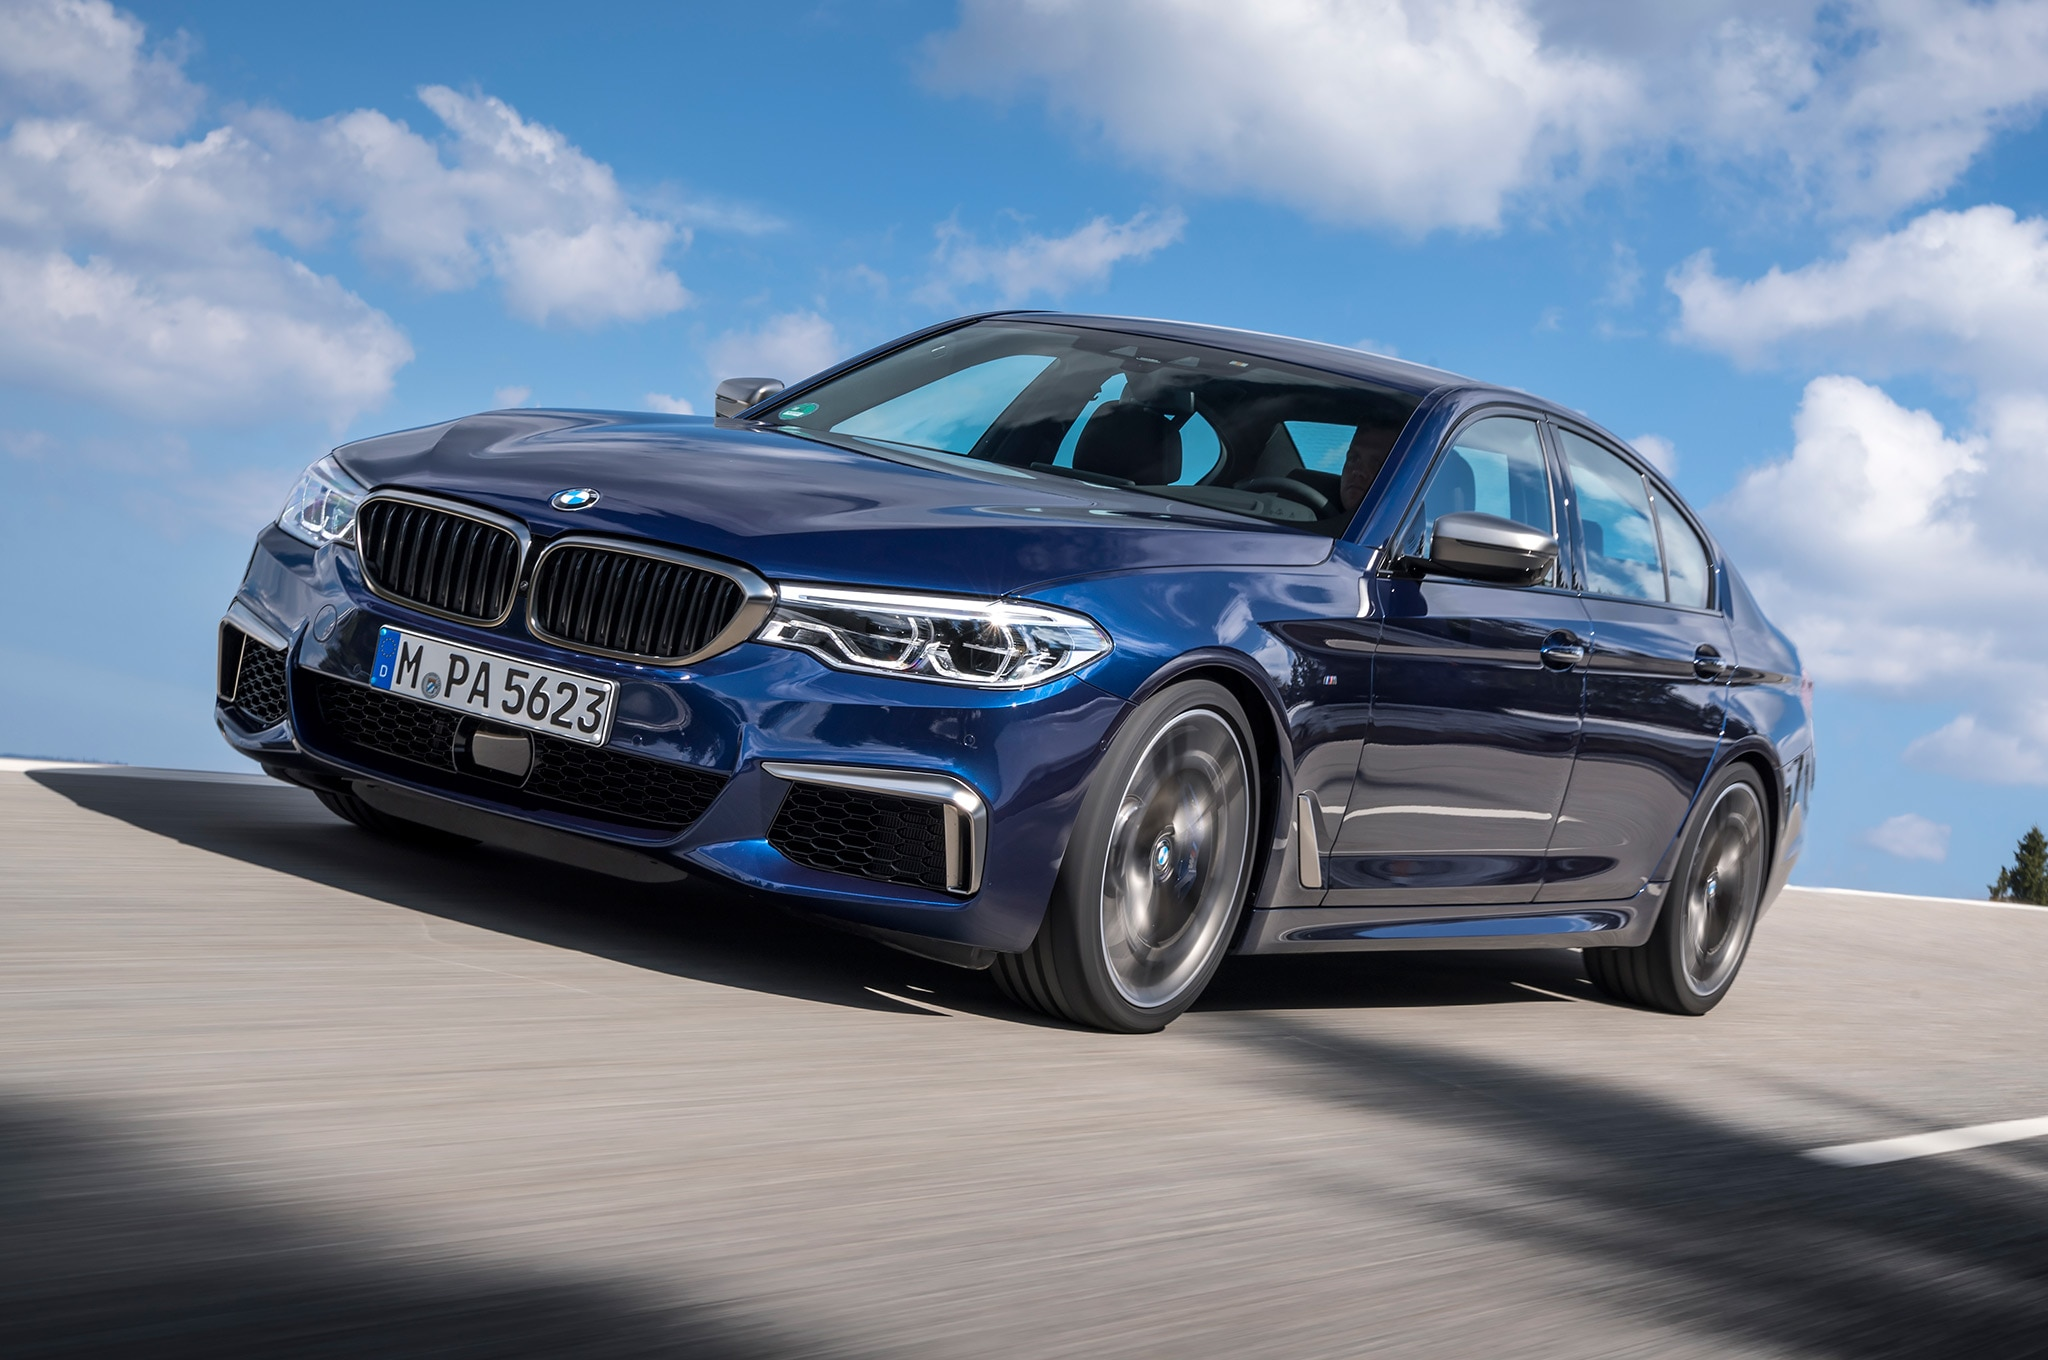 2018 bmw m550i xdrive first drive review automobile magazine. Black Bedroom Furniture Sets. Home Design Ideas